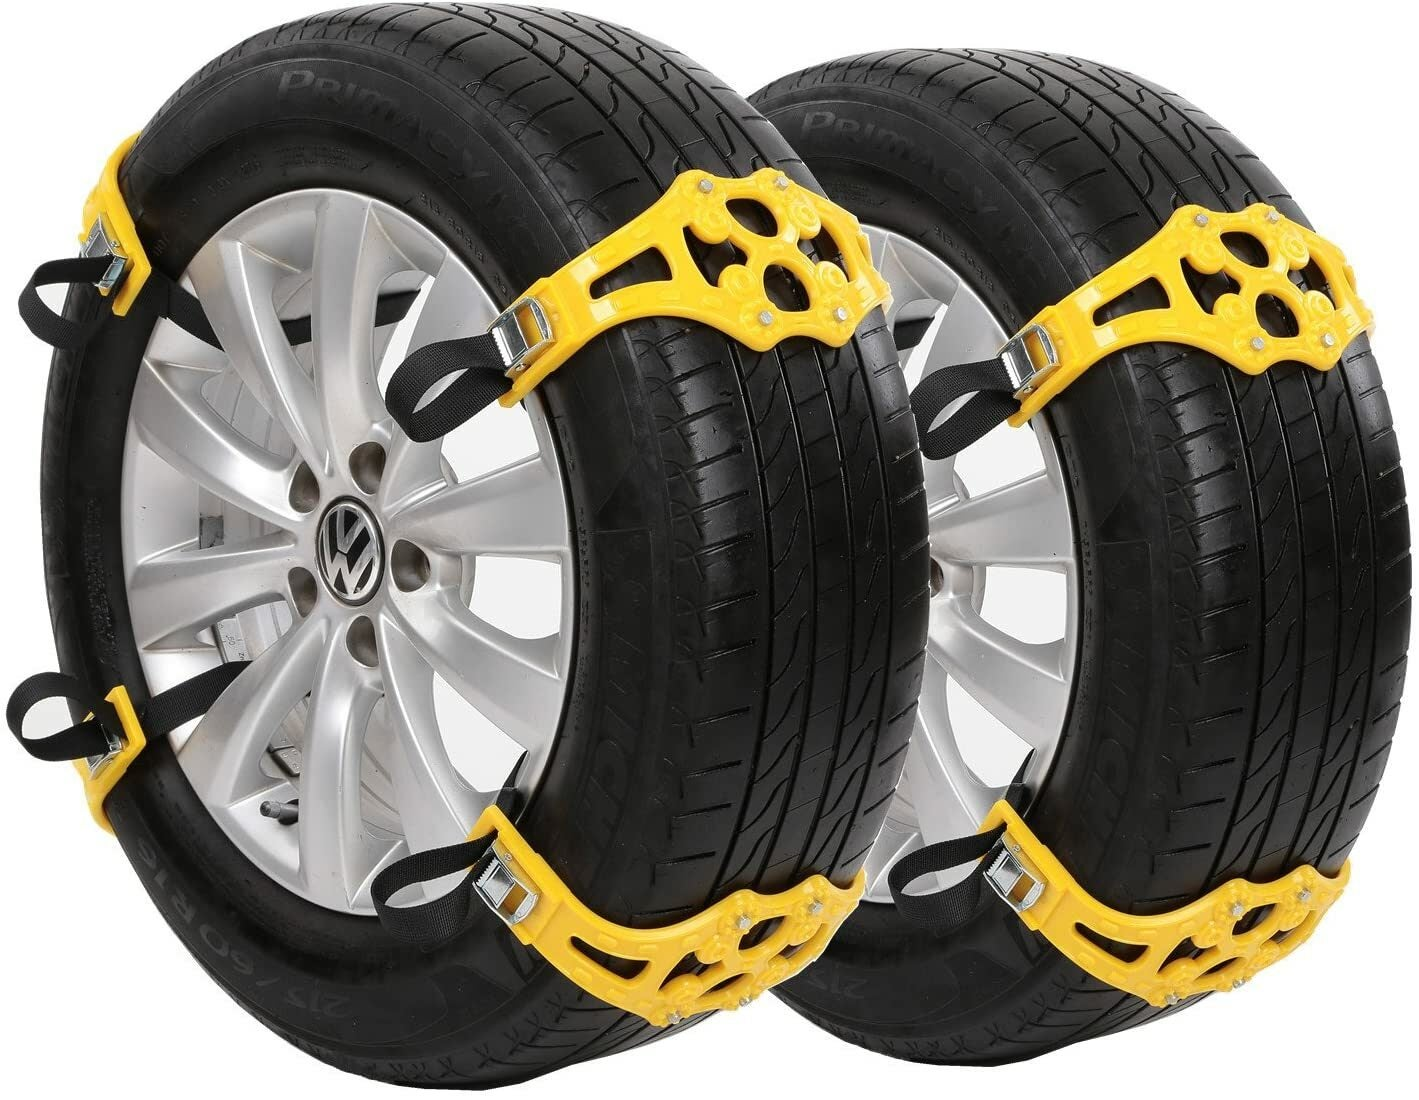 The Best Tire Chains for Snow (Review & Buying Guide) in 2020